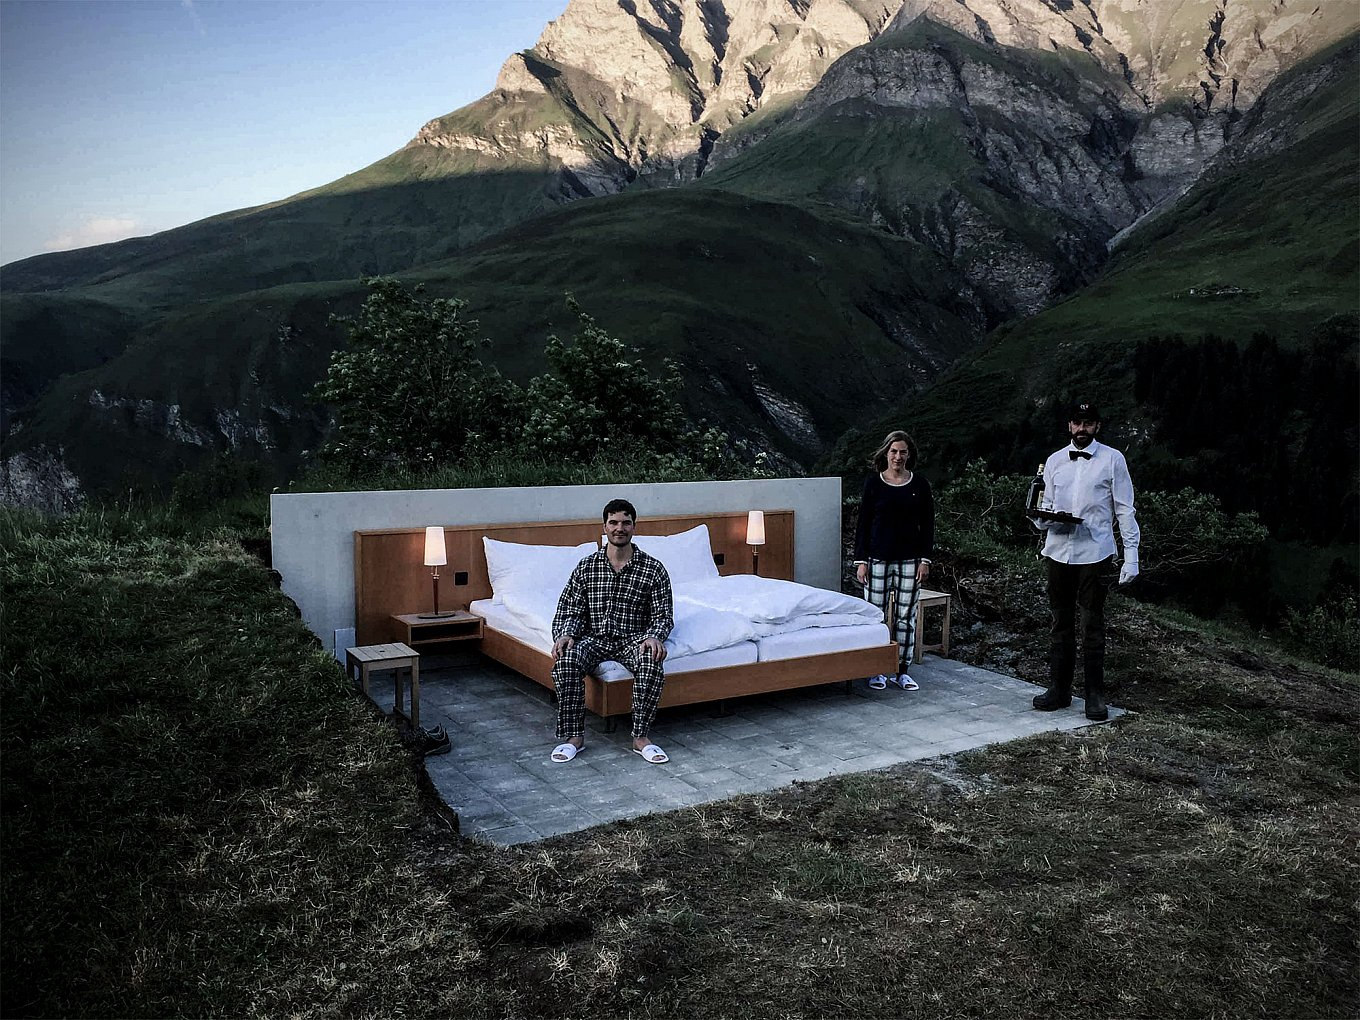 open-air-hotel-room-in-the-swiss-alps-gessato-2